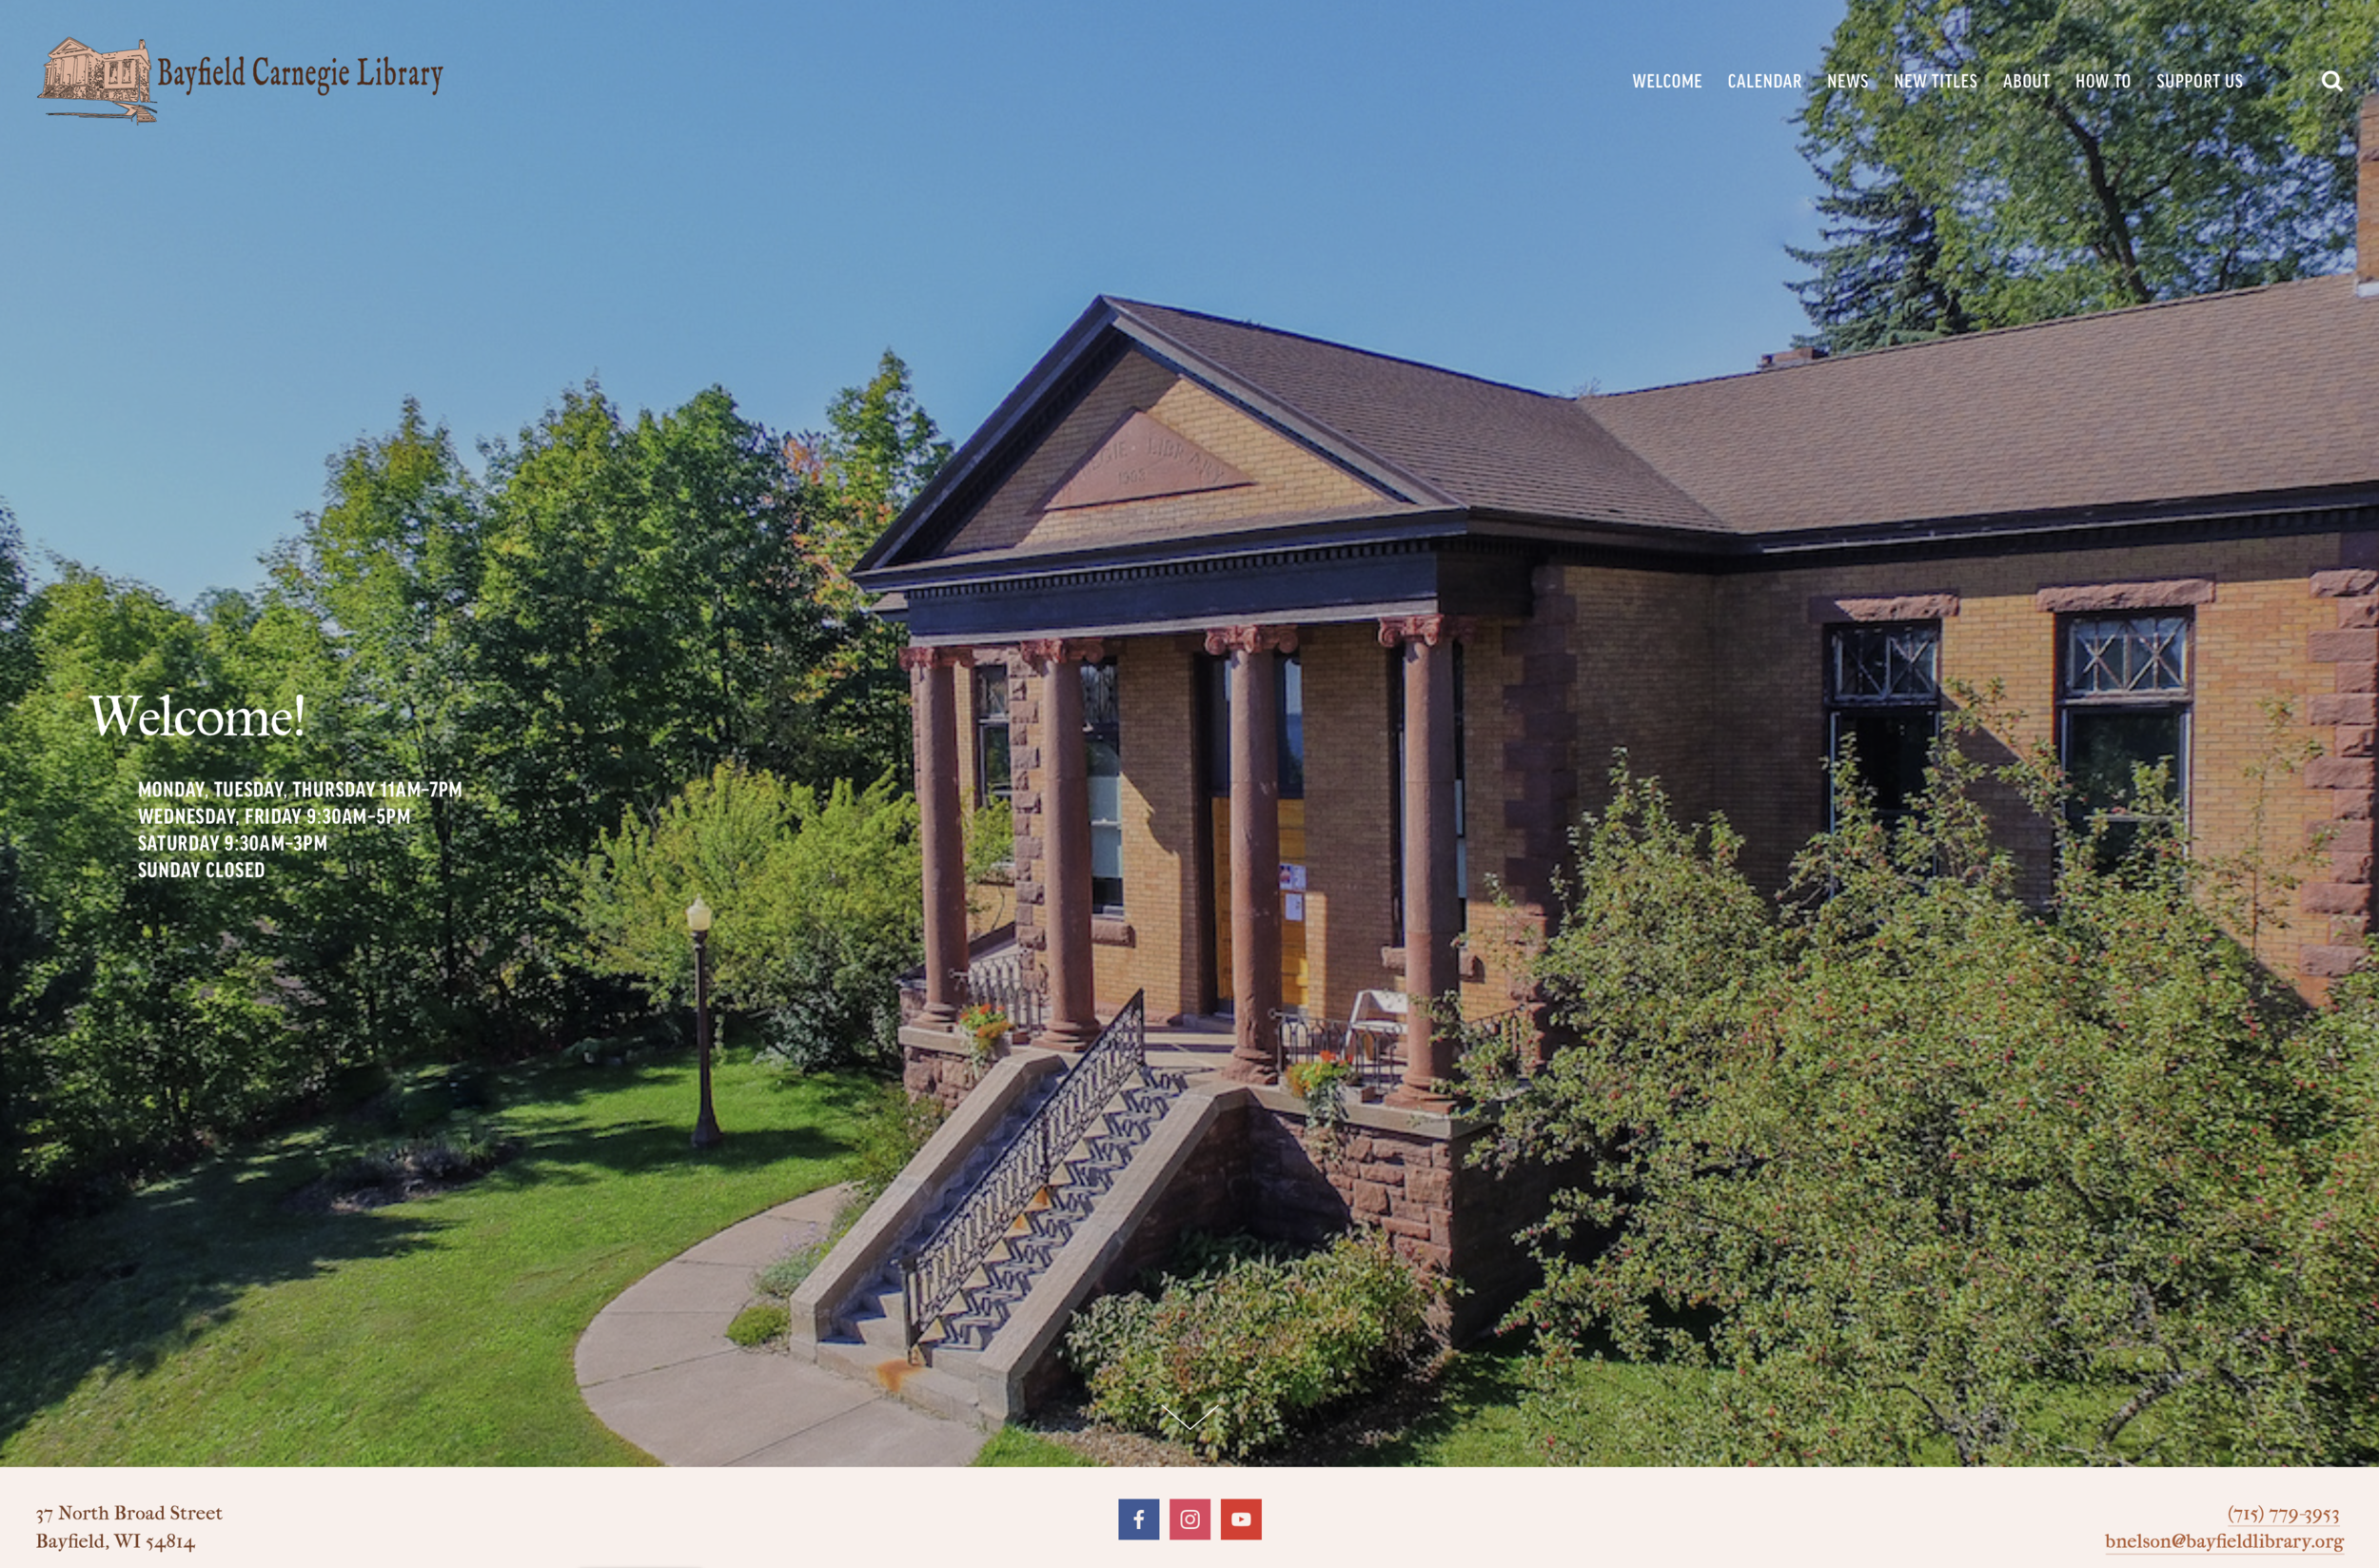 Bayfield Carnegie Library website.png